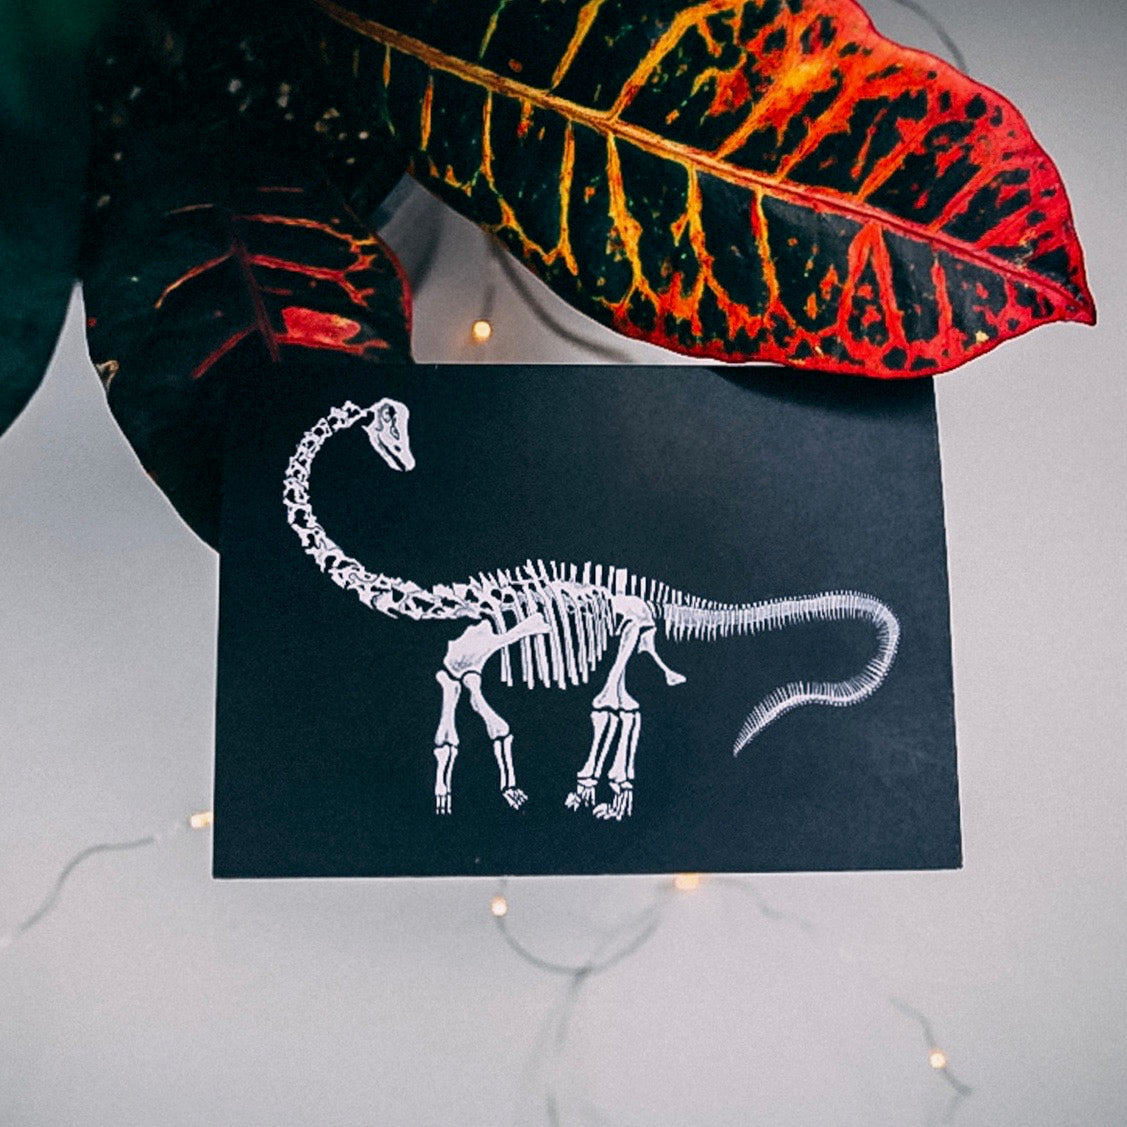 Diplodocus Dinosaur Skeleton - Greetings Card